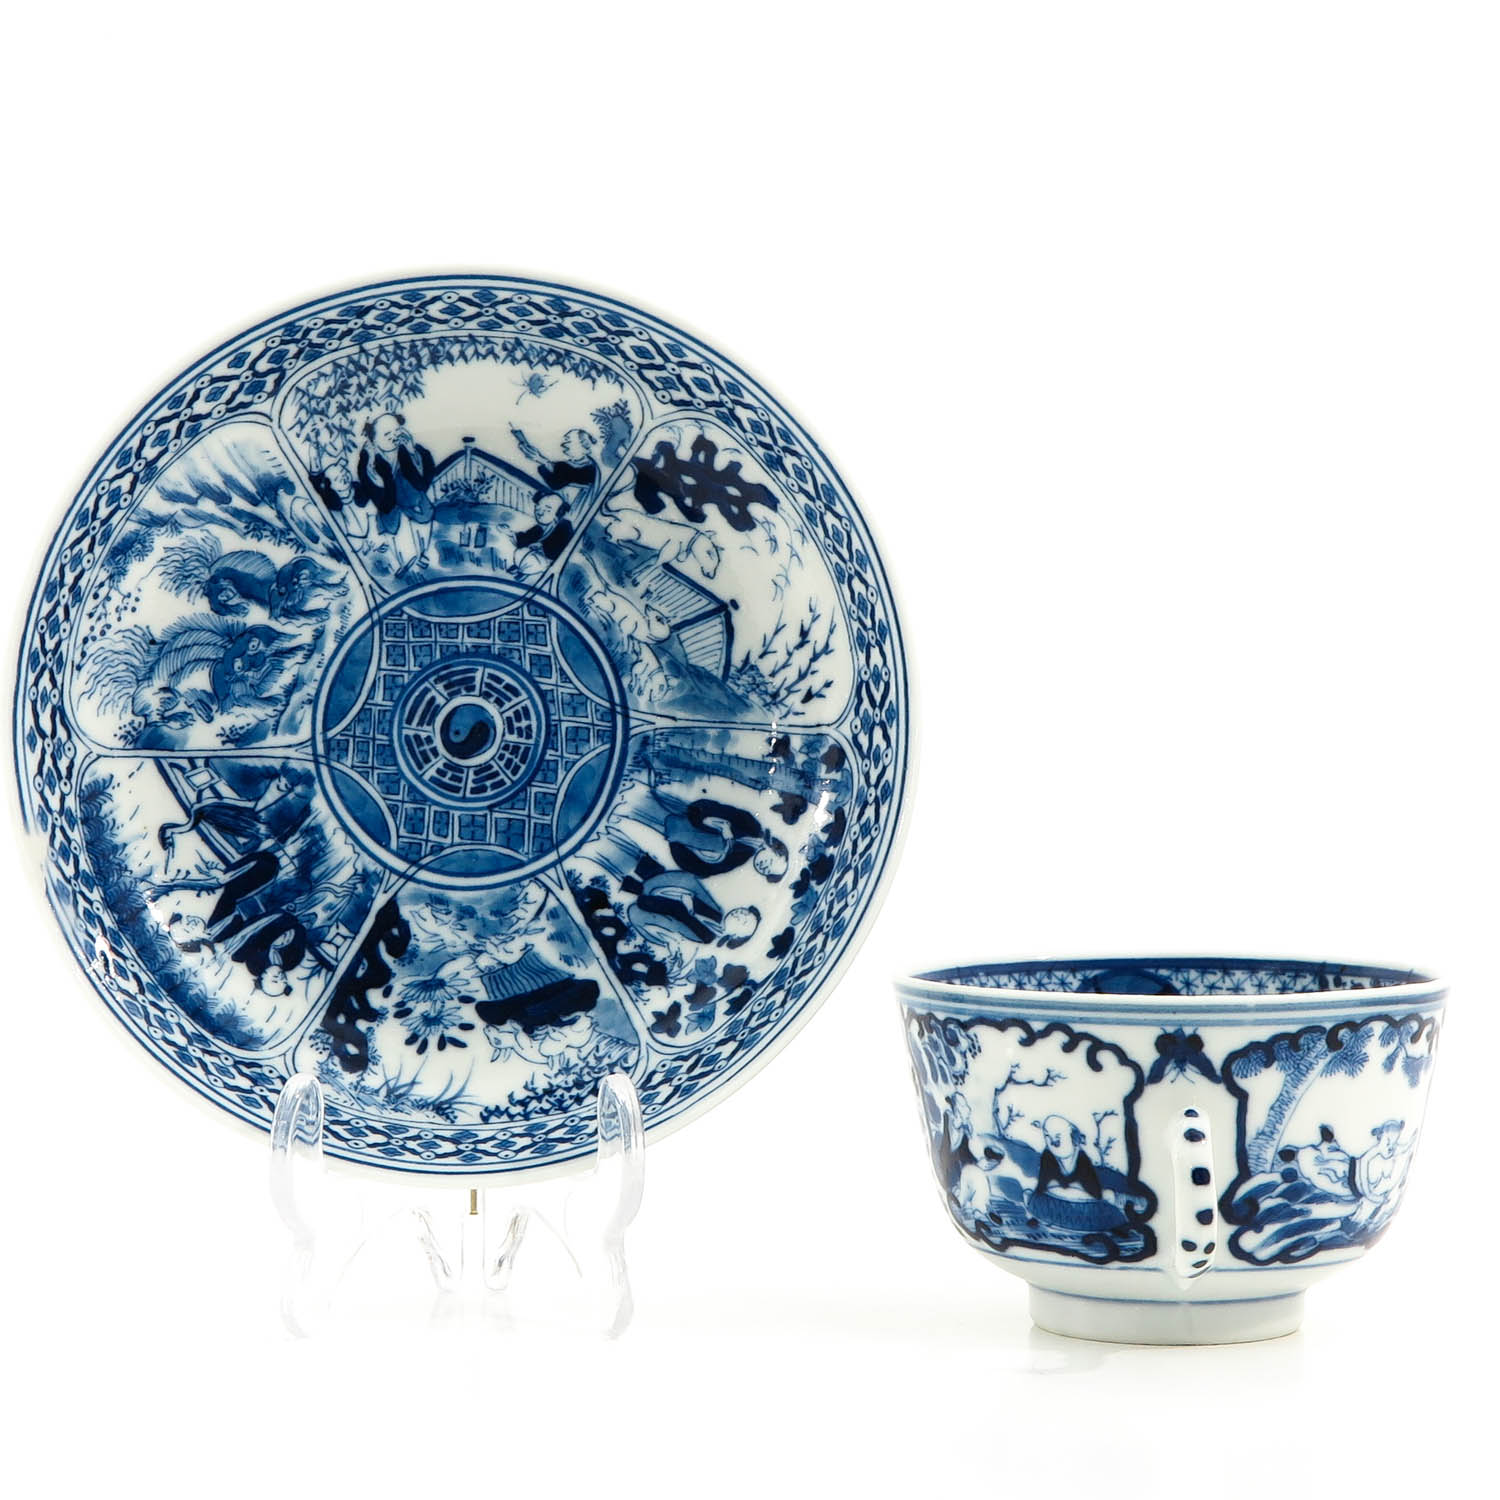 A Blue and White Cup and Saucer - Image 2 of 9